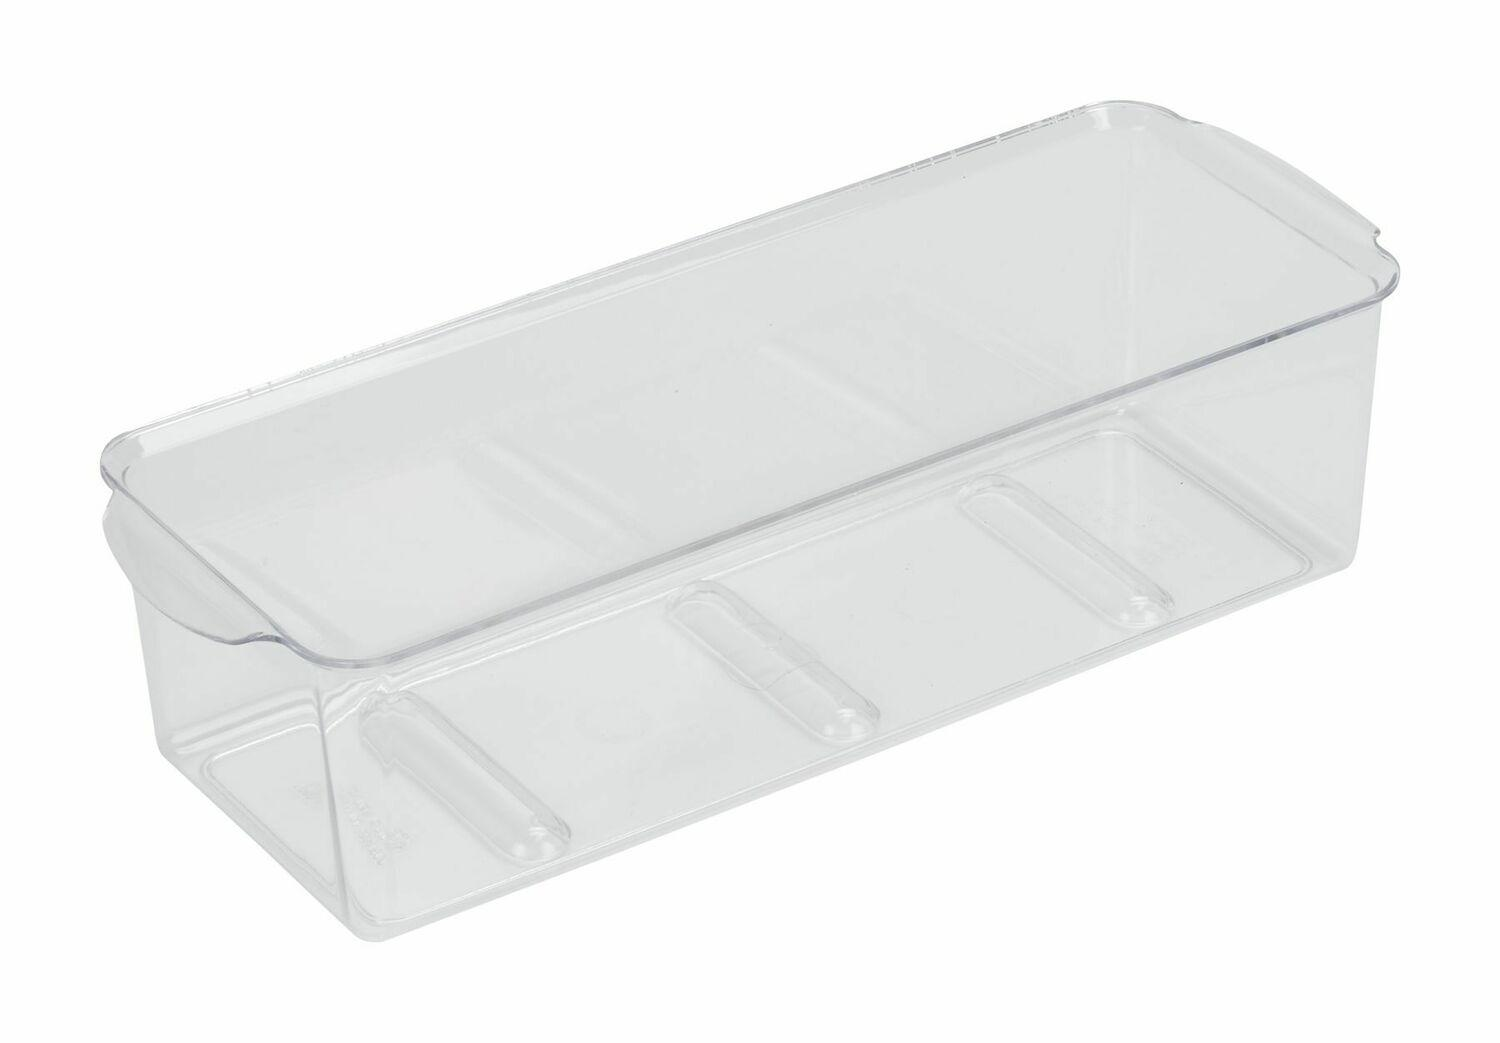 MIELE Replacement Refrigeration Egg Tray